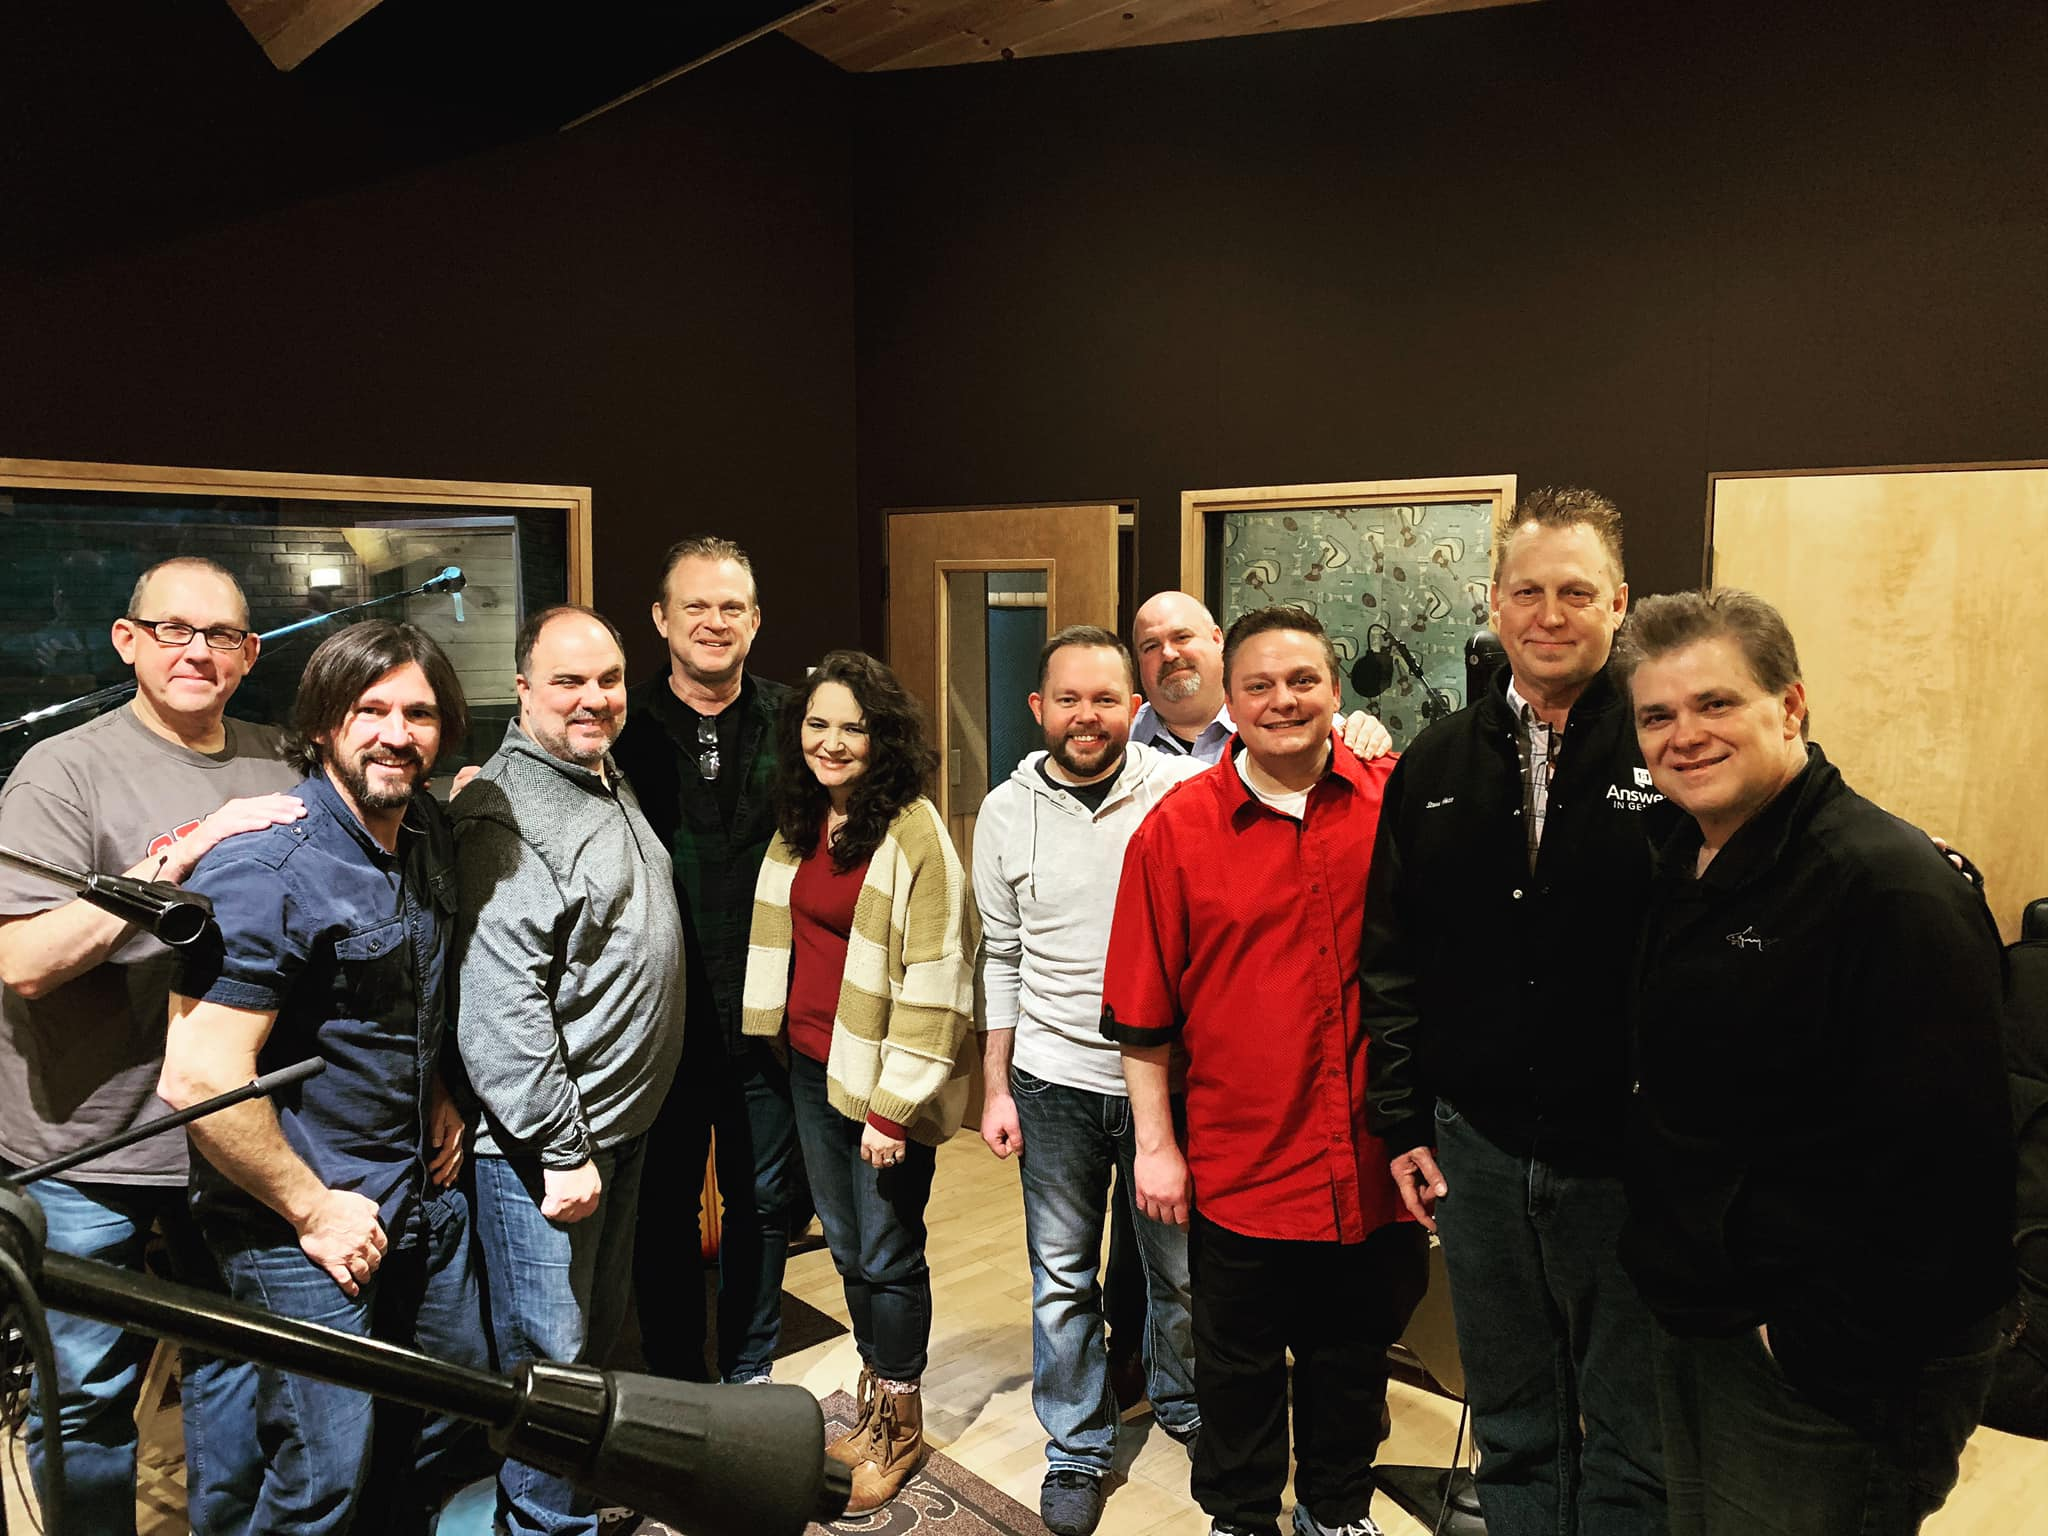 Steve Hess & Southern Salvation | New Music For 2020 Ark Encounter Concerts | New Album